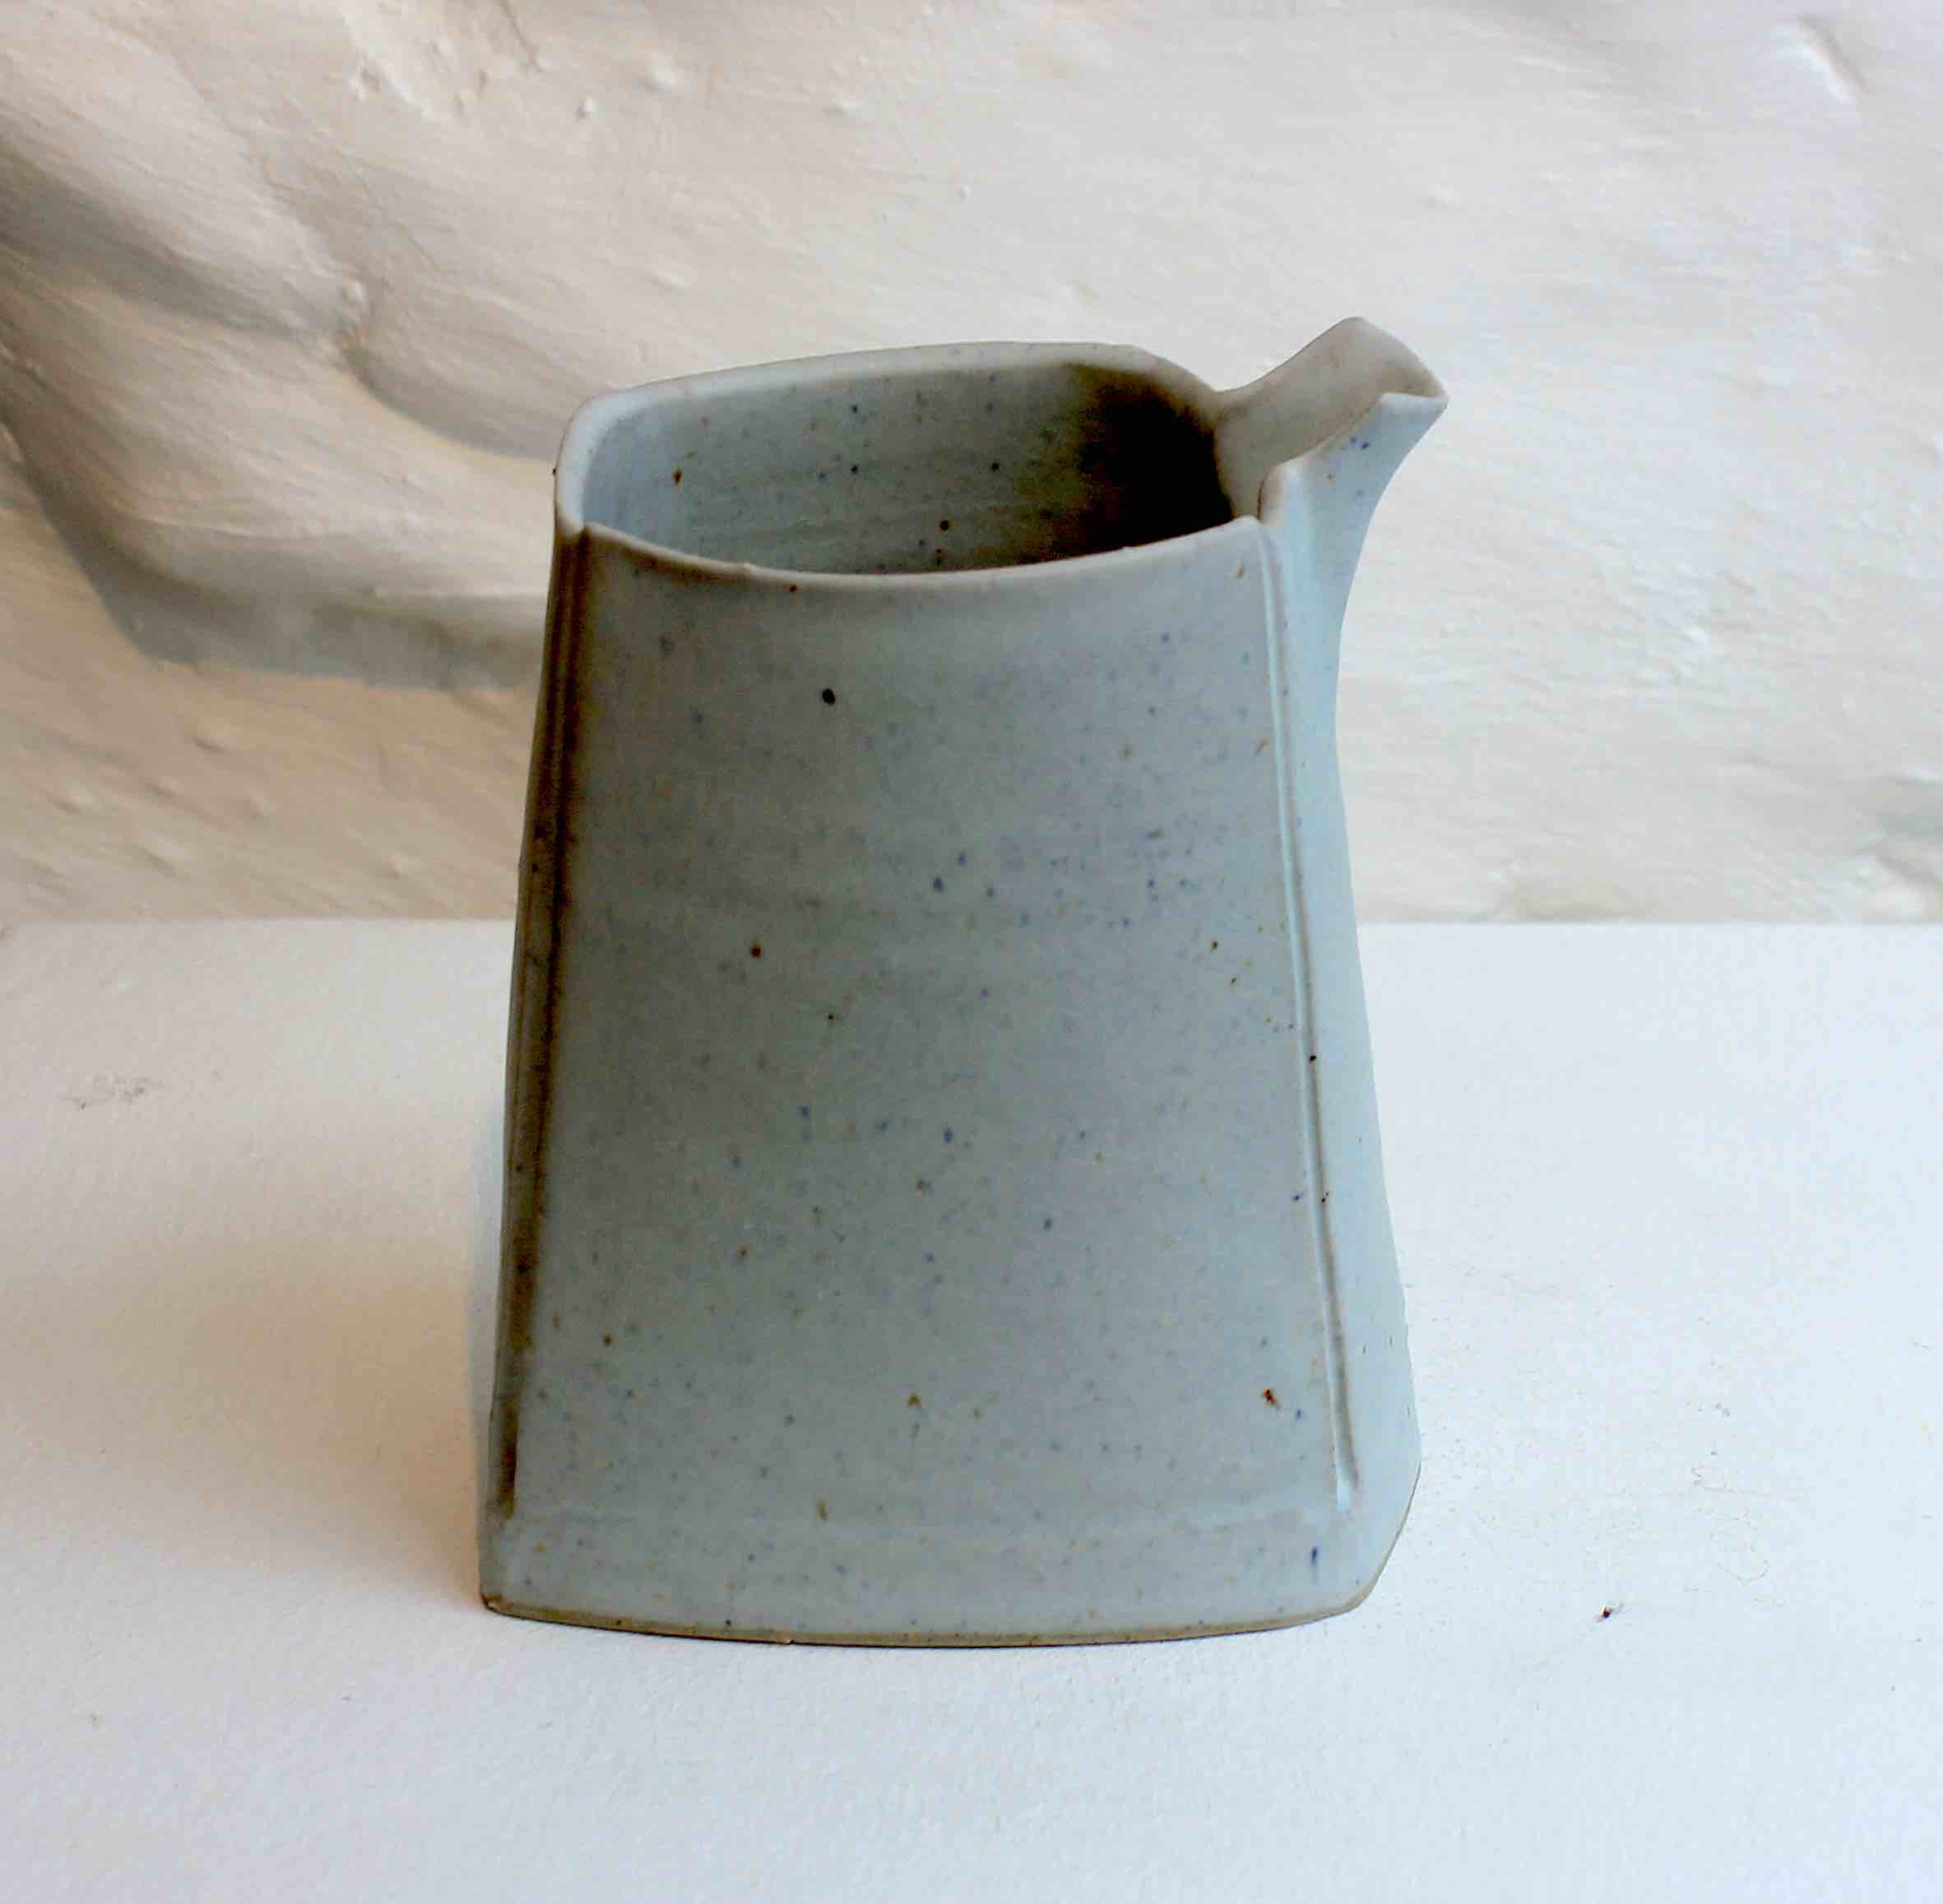 "<span class=""link fancybox-details-link""><a href=""/artists/99-carina-ciscato/works/5766-carina-ciscato-coloured-porcelain-jug-2018/"">View Detail Page</a></span><div class=""artist""><strong>Carina Ciscato</strong></div> b. 1970 <div class=""title""><em>Coloured Porcelain Jug</em>, 2018</div> <div class=""signed_and_dated"">porcelain</div> <div class=""medium"">porcelain</div> <div class=""dimensions"">11 x 8 cm<br /> 4 3/8 x 3 1/8 inches</div><div class=""price"">£350.00</div><div class=""copyright_line"">OwnArt: £35 x 10 Months, 0% APR</div>"